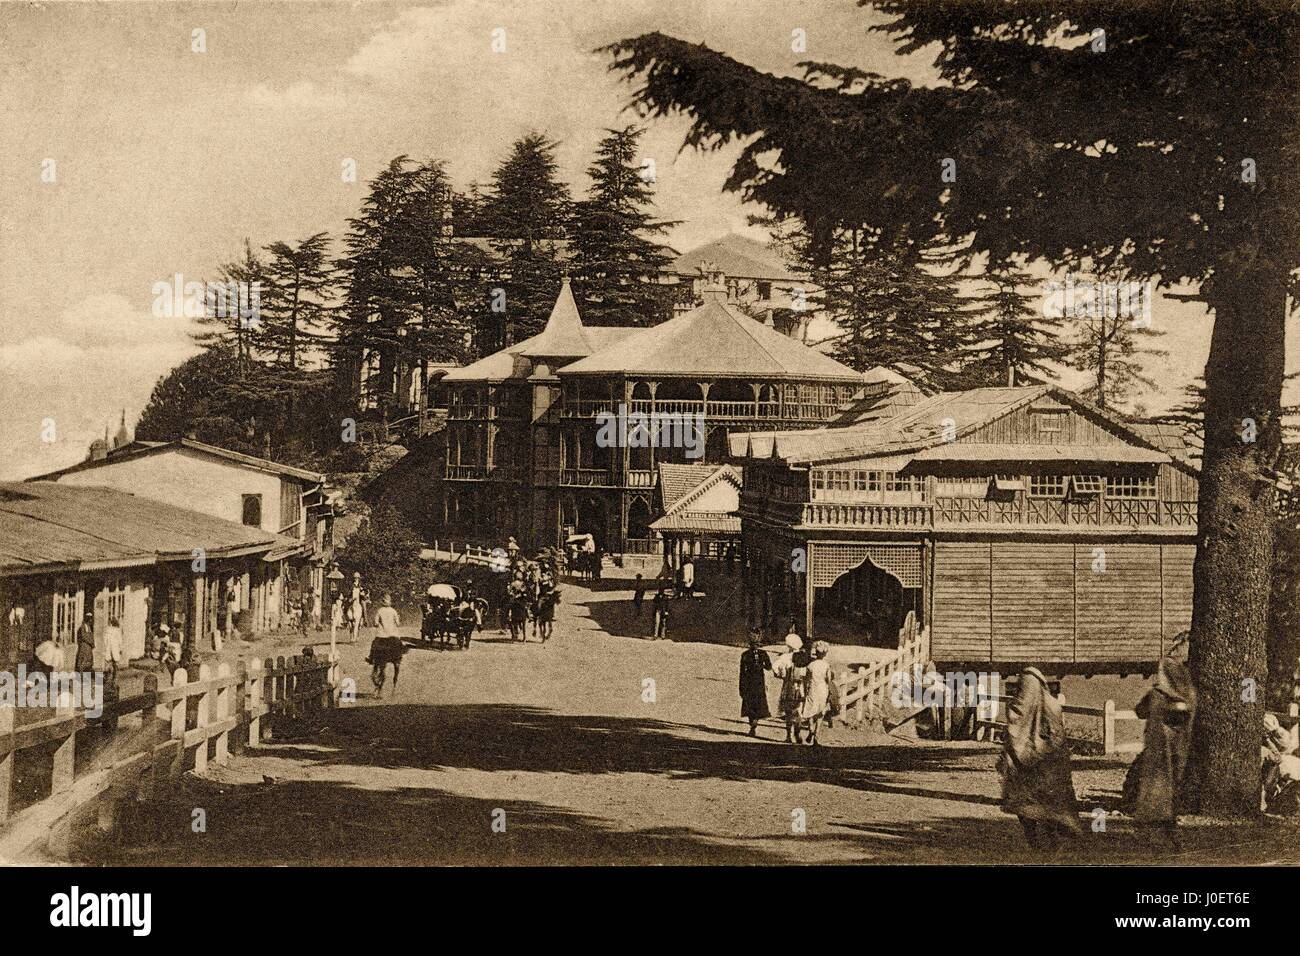 Vintage 1900s photo of post office, shimla, himachal pradesh, india, asia - Stock Image